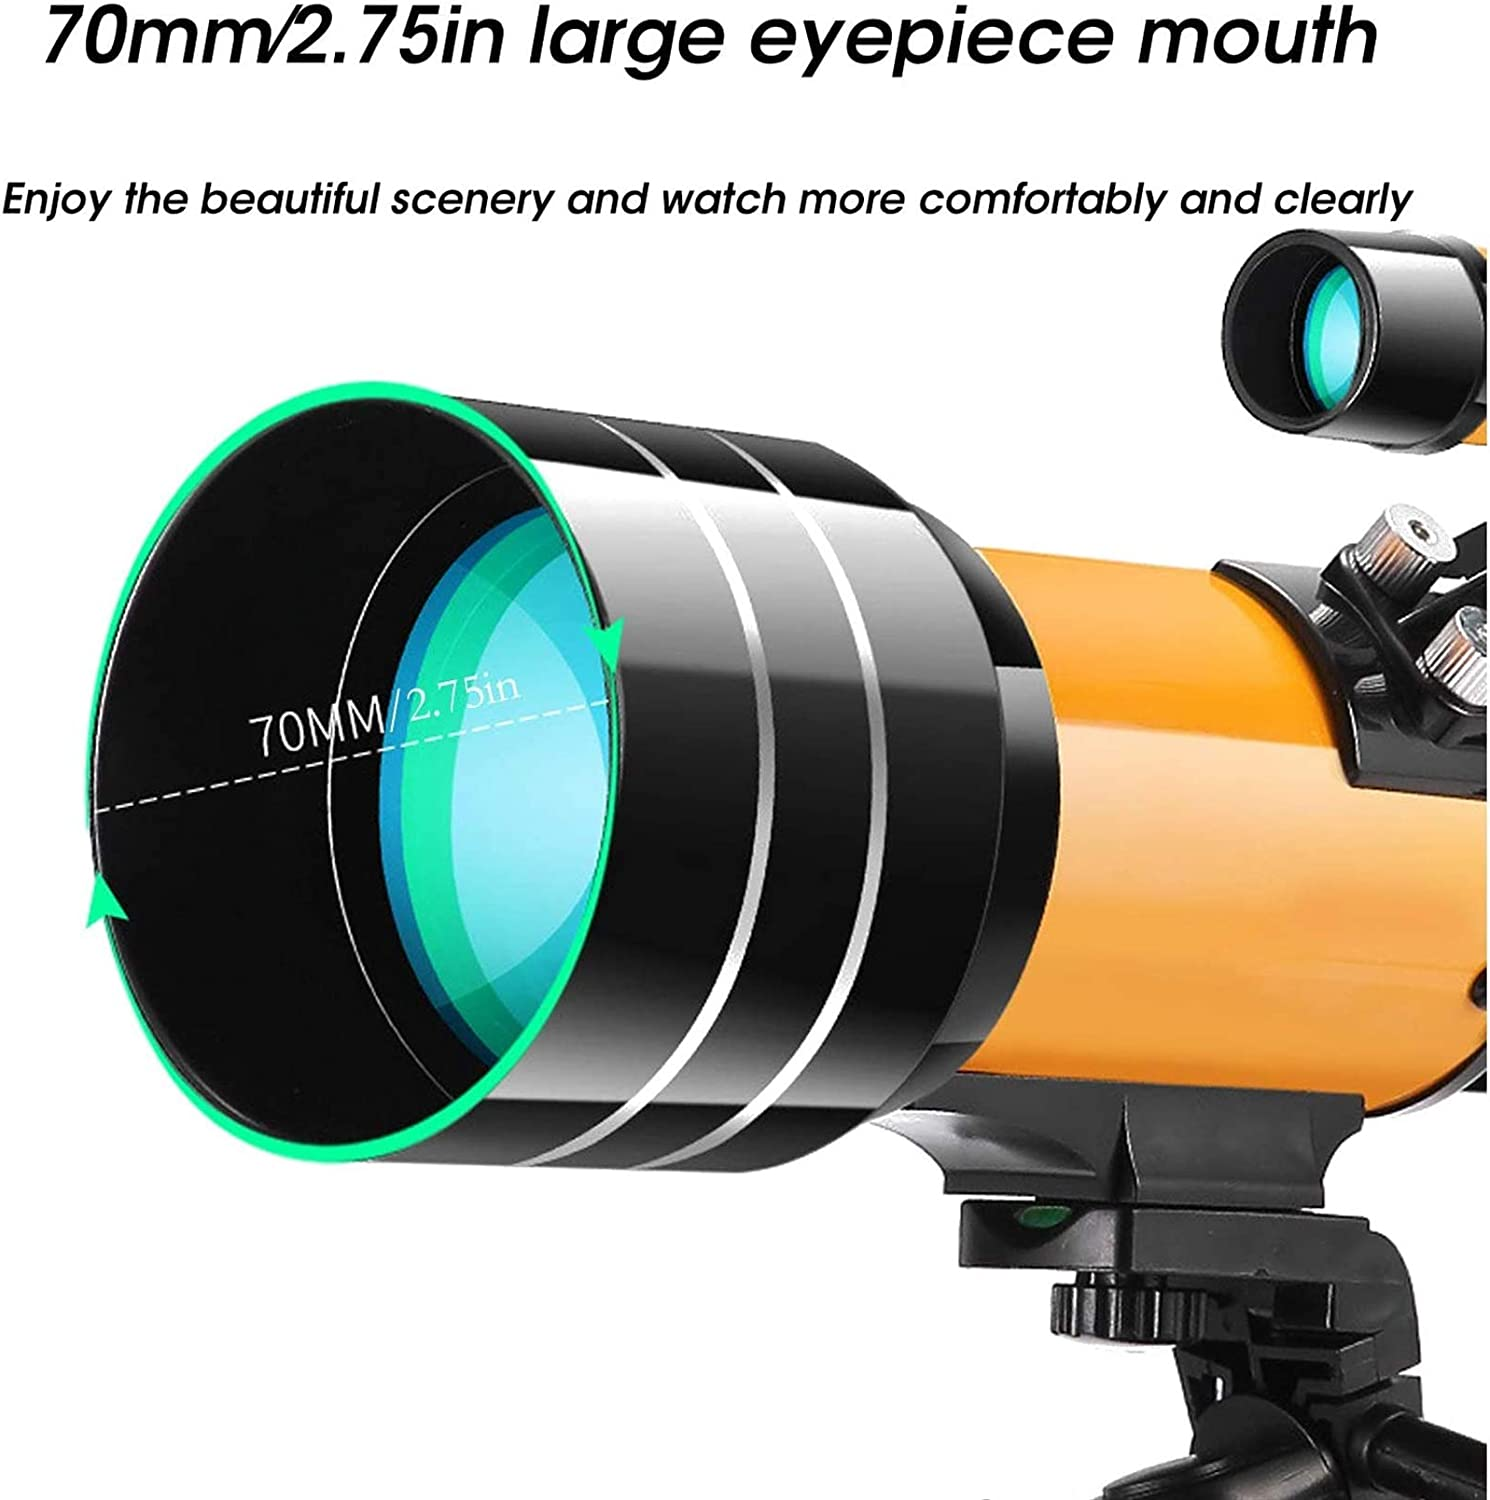 Portable Telescope for Beginners Phone Adapter 70mm Aperture Refractor Telescope for Stargazing Sun Film Smart Finder with Tripod Bac Magnetic Indoor Exercise Bike Telescopes for Adults Kids